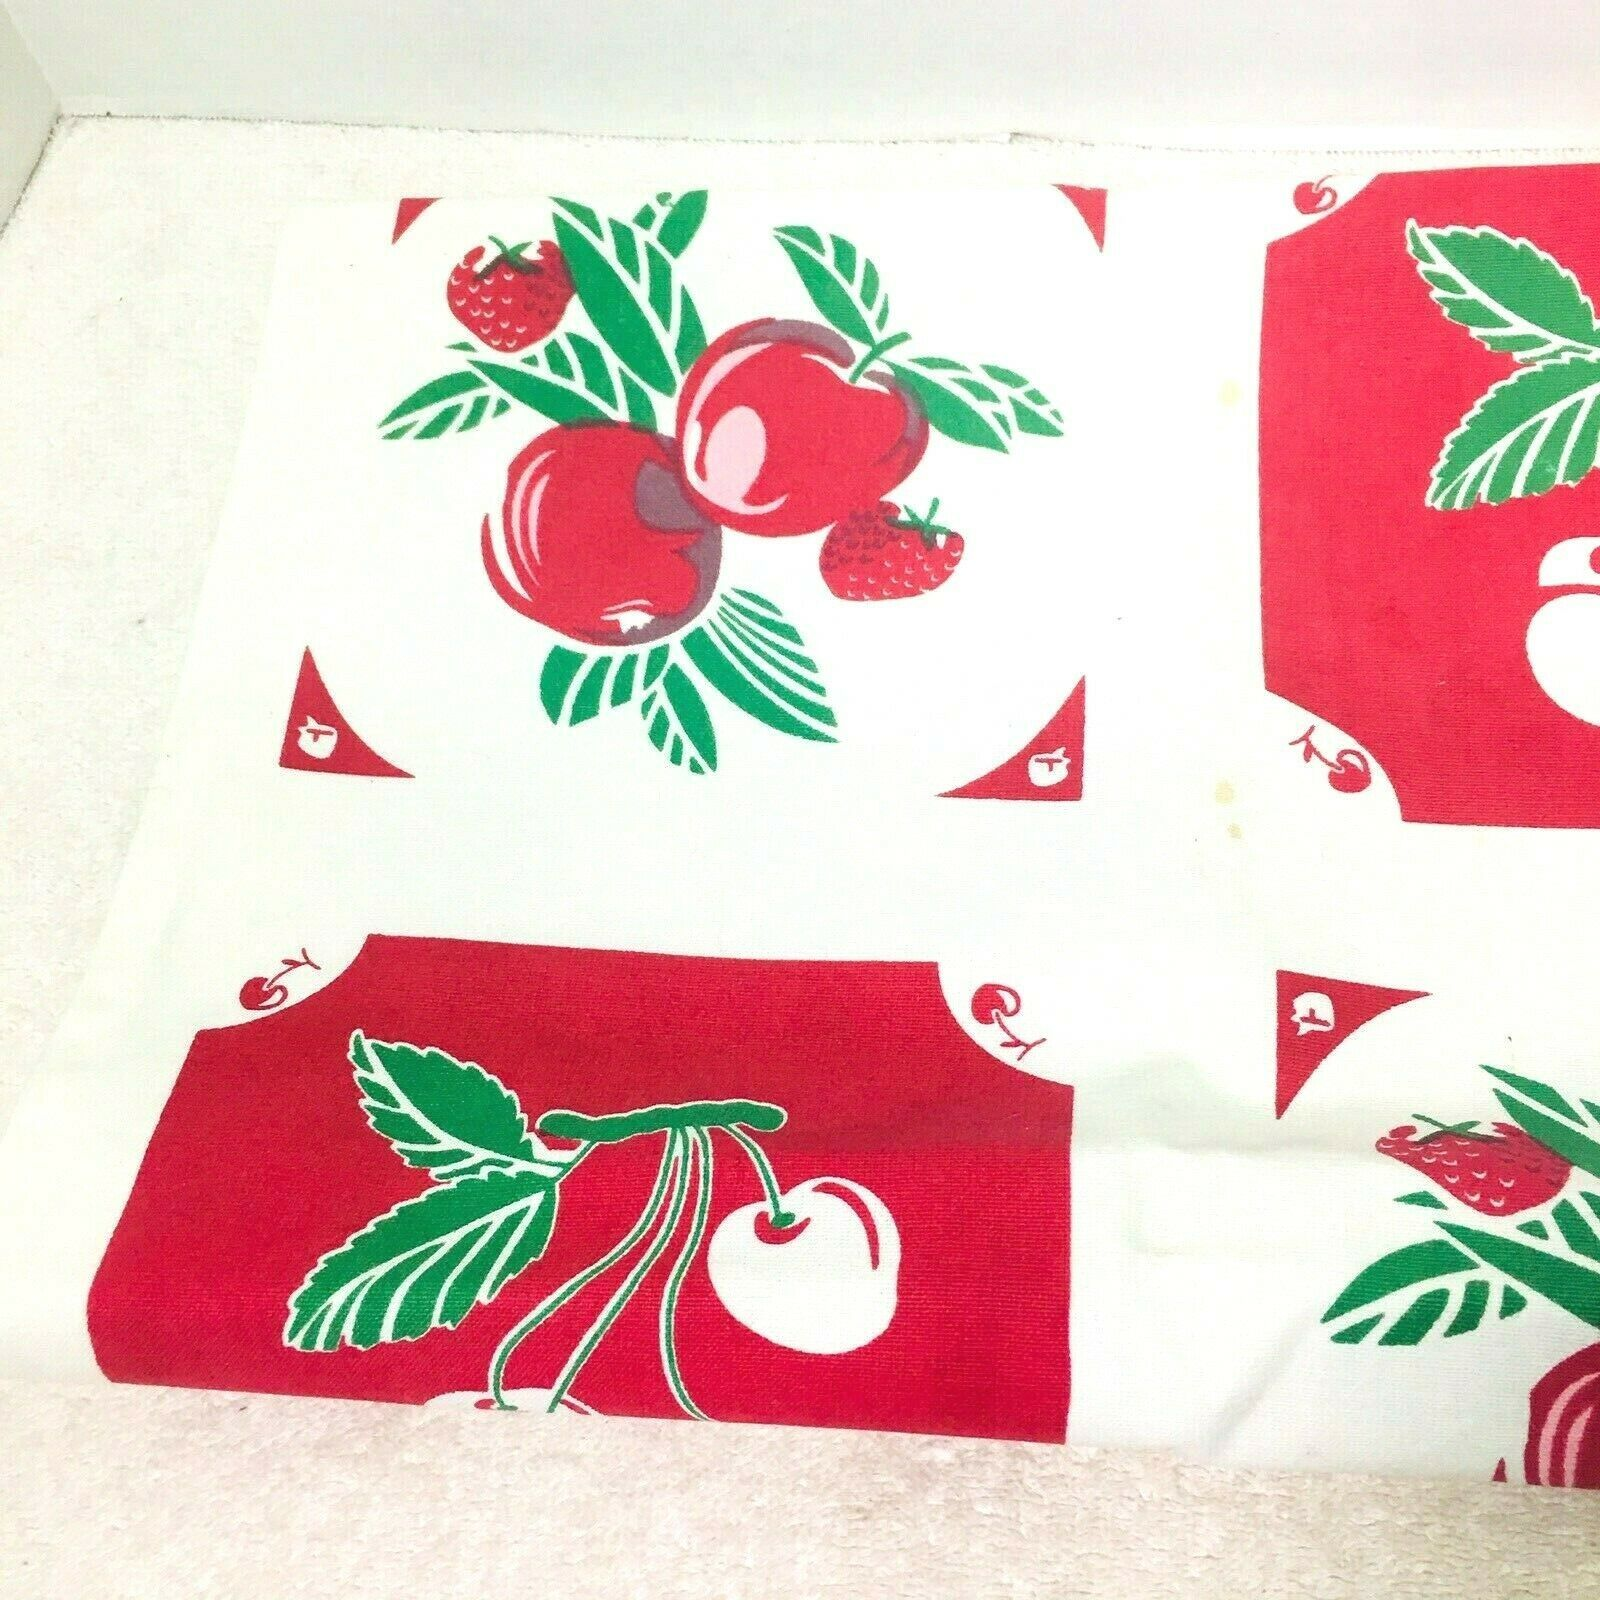 Reproduction Kitchen Toweling Towel Fabric Unsewn Red Cream Green Cherries Apple image 2